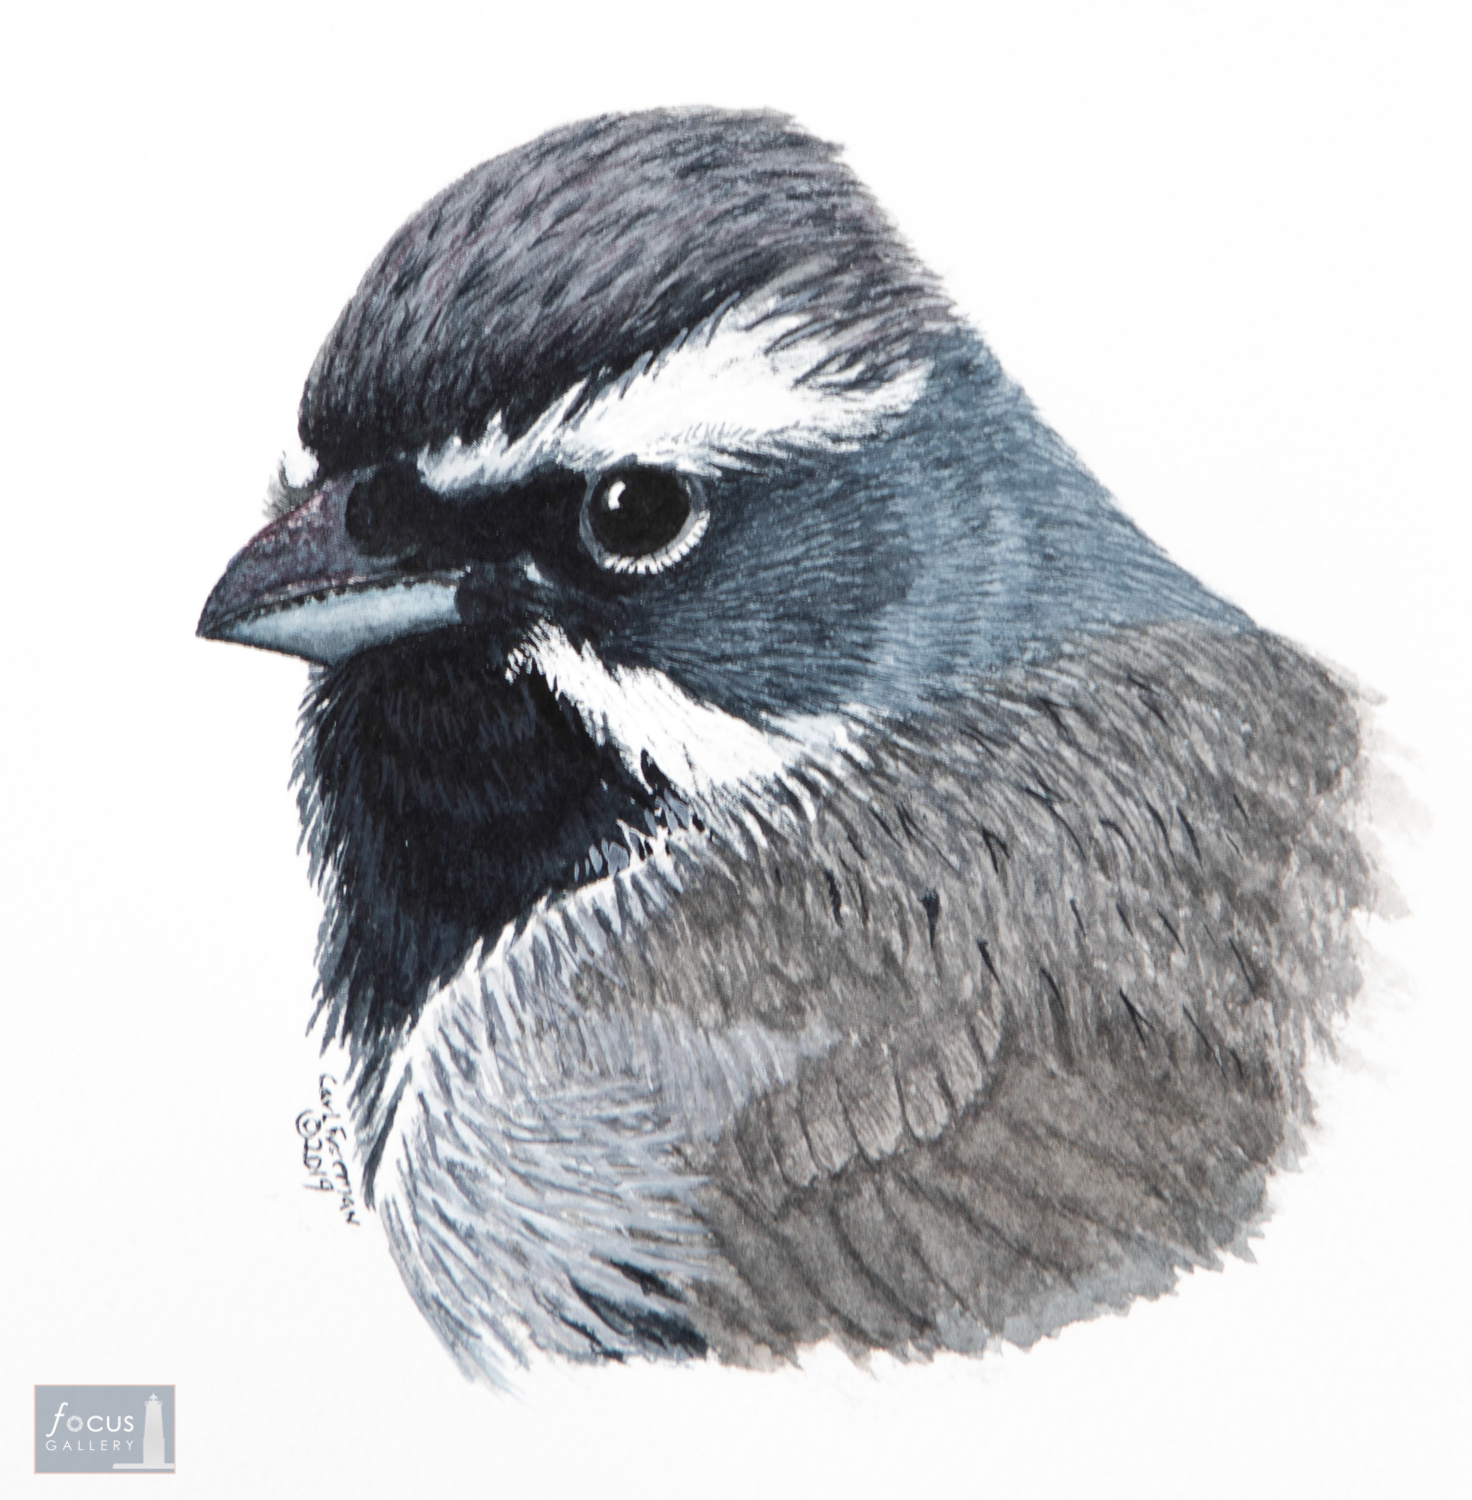 Original watercolor painting of the detail of a Black-throated Sparrow bird's head and feathers.